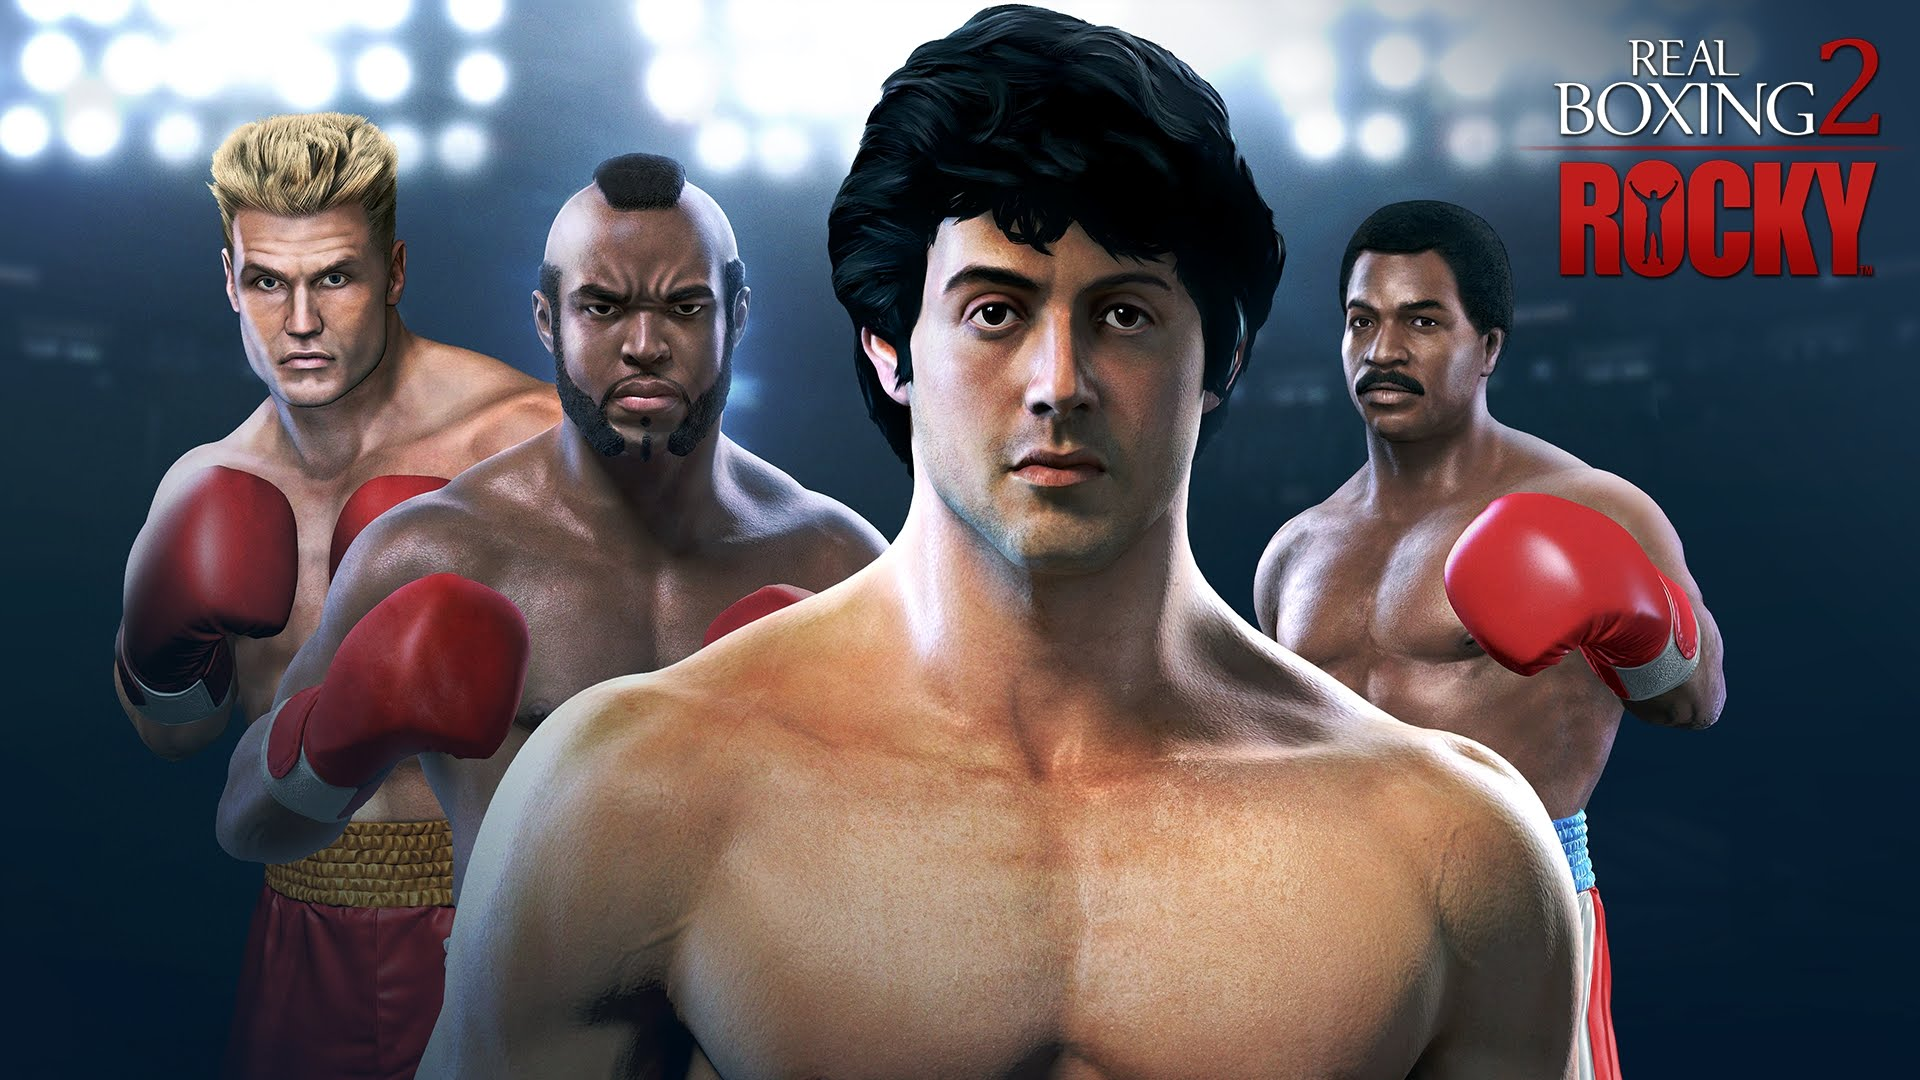 Real Boxing 2 Rocky Cheats, Hack, Guide & Tips [Free Gems] - Games Park